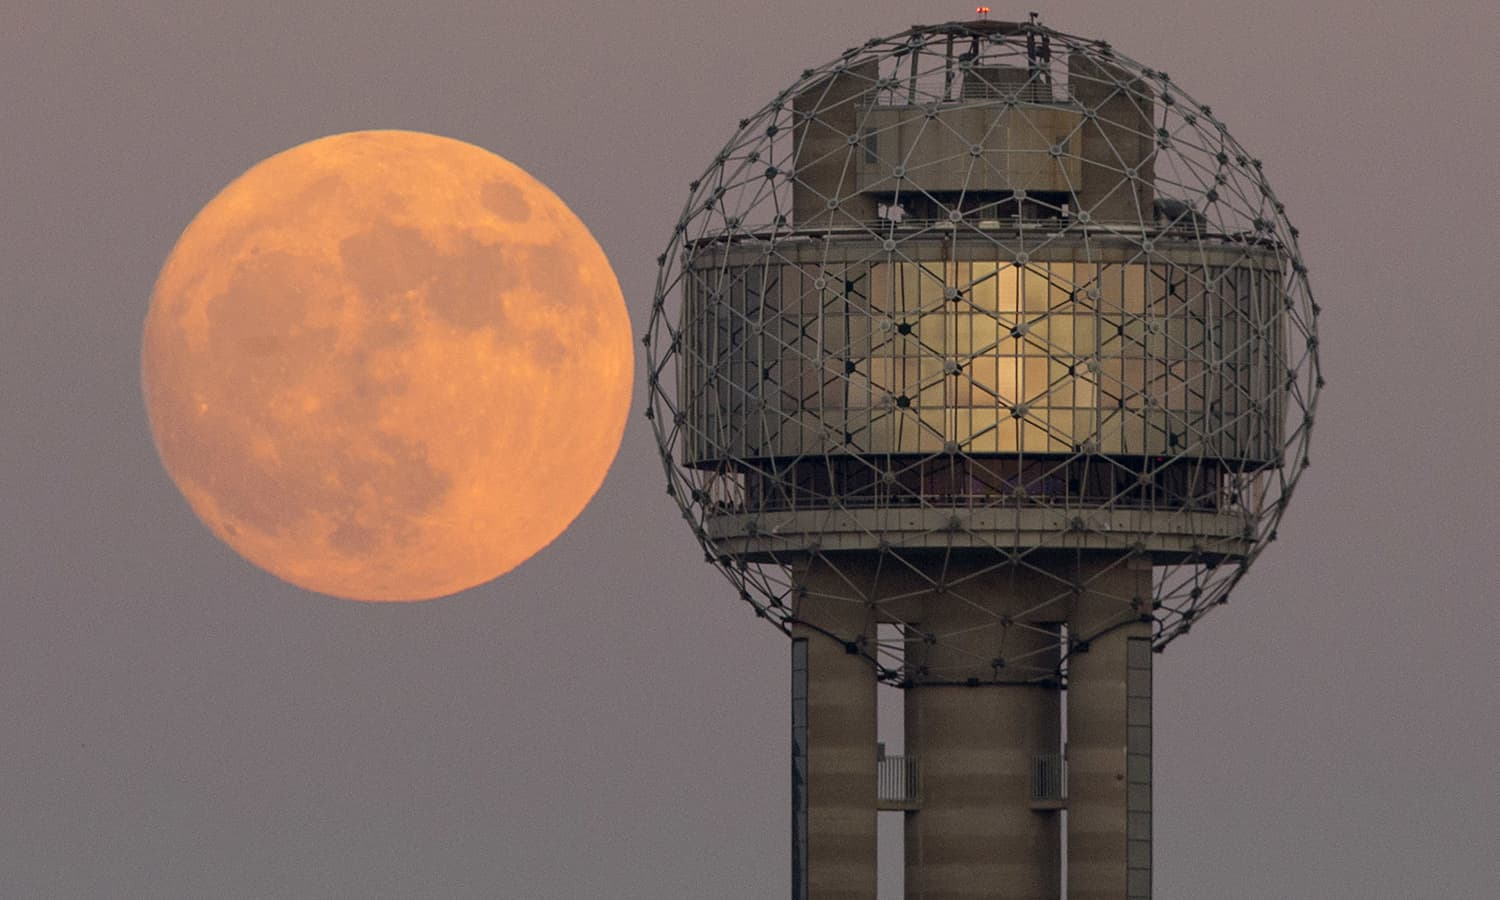 The moon rises behind Reunion Tower in downtown Dallas. ─AP